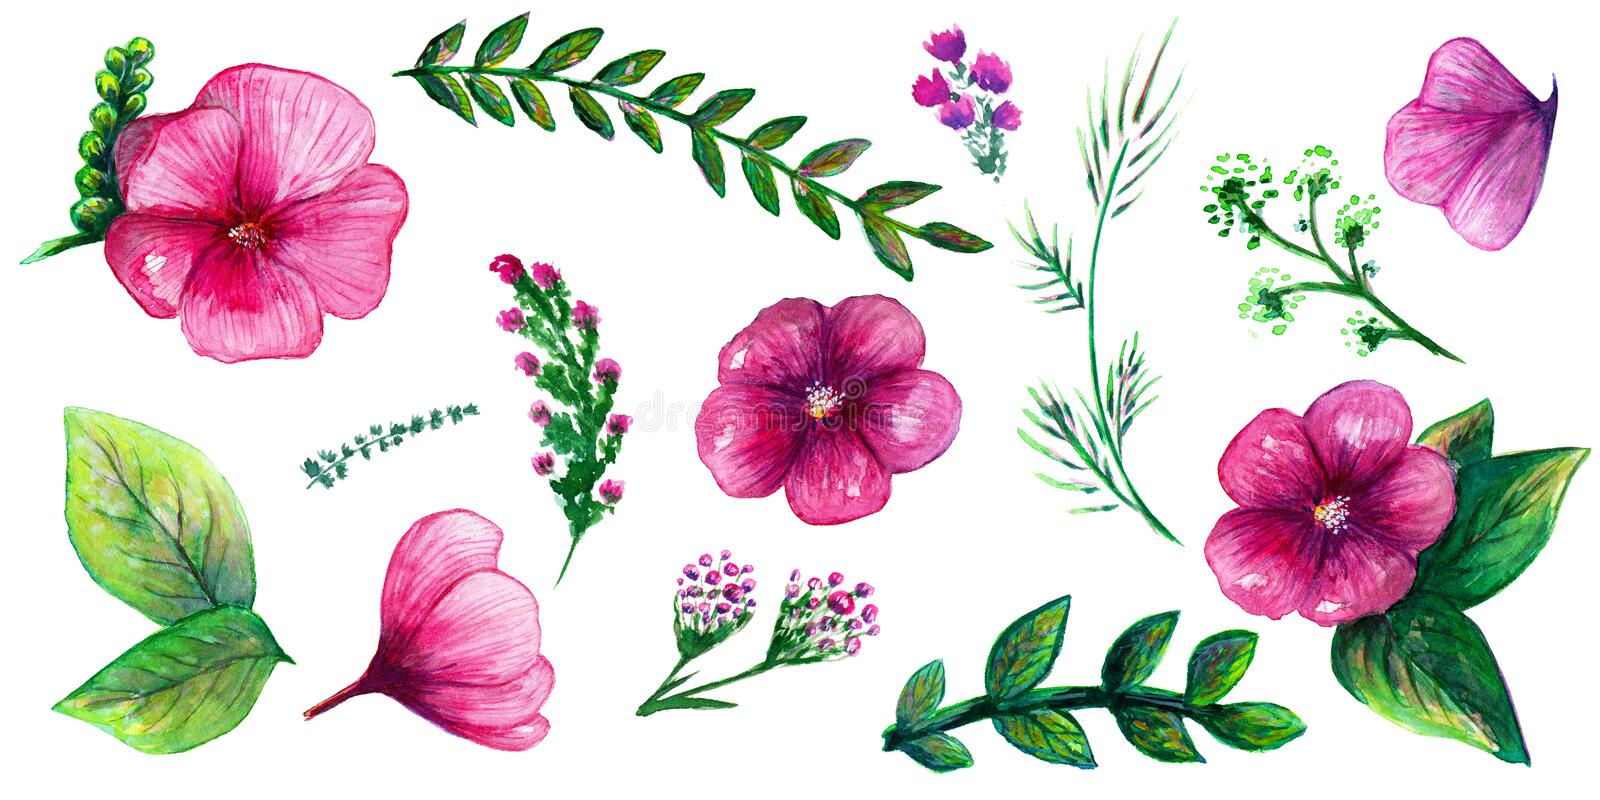 Watercolor hand drawn collection including 14 pink flowers, green and gold leafs and botanical elements on the white background. royalty free illustration